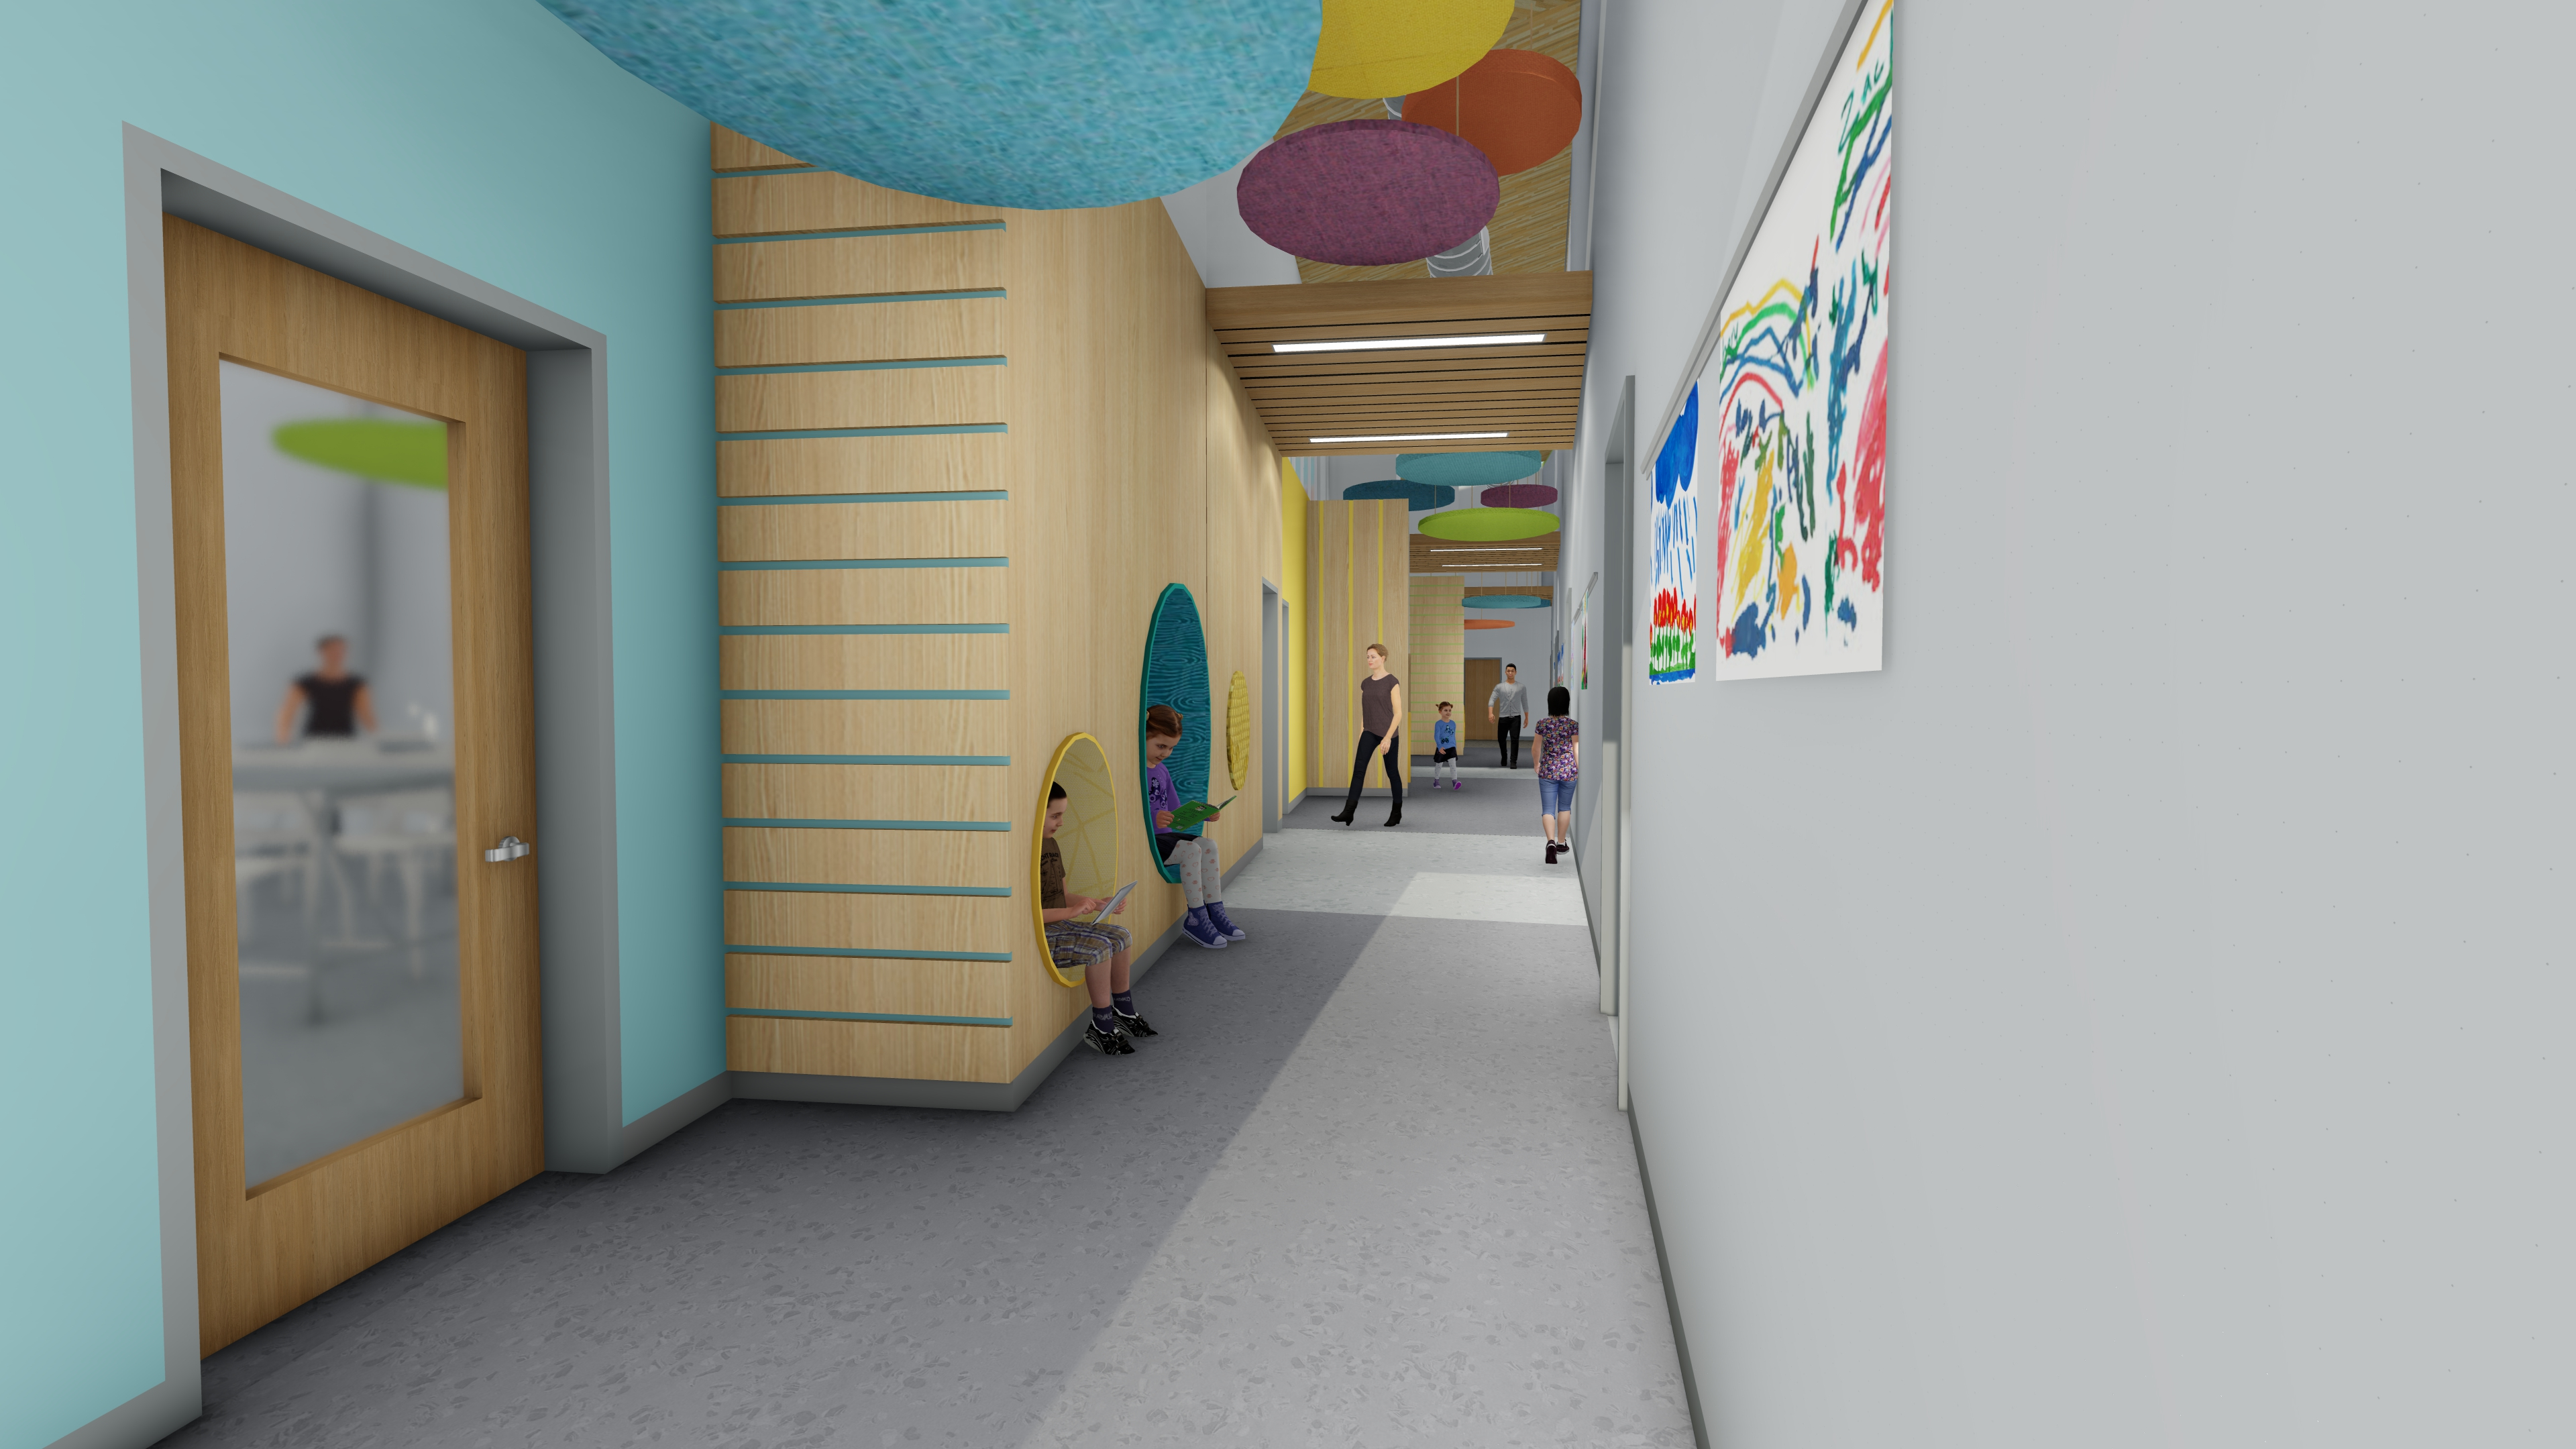 The Maine Behavioral Healthcare (MBH) Center of Excellence in Autism and Developmental Disorders' hallway with seating nooks and colorful artwork